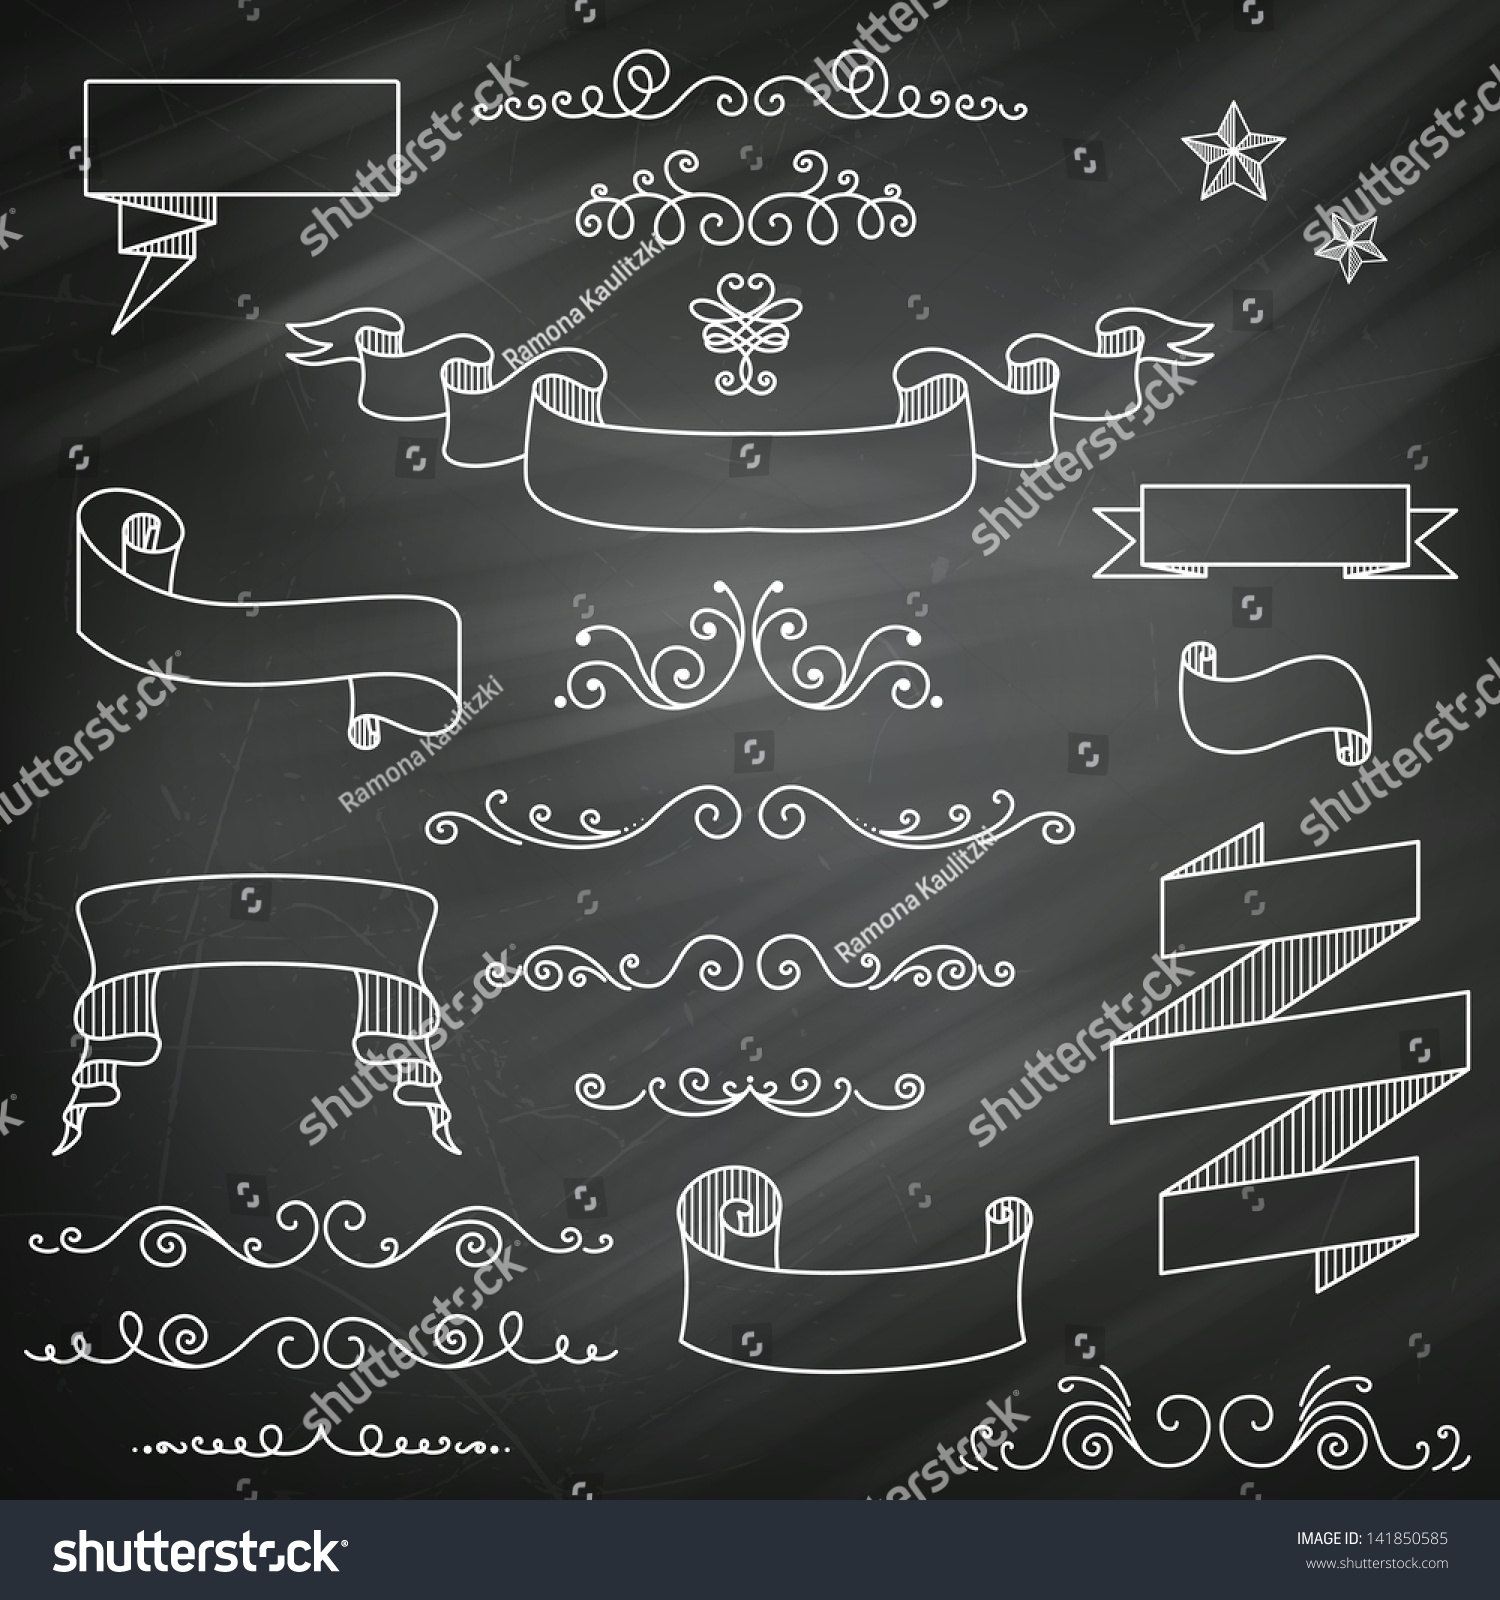 vector illustration of decorative vintage chalkboard elements - Decorative Chalkboards